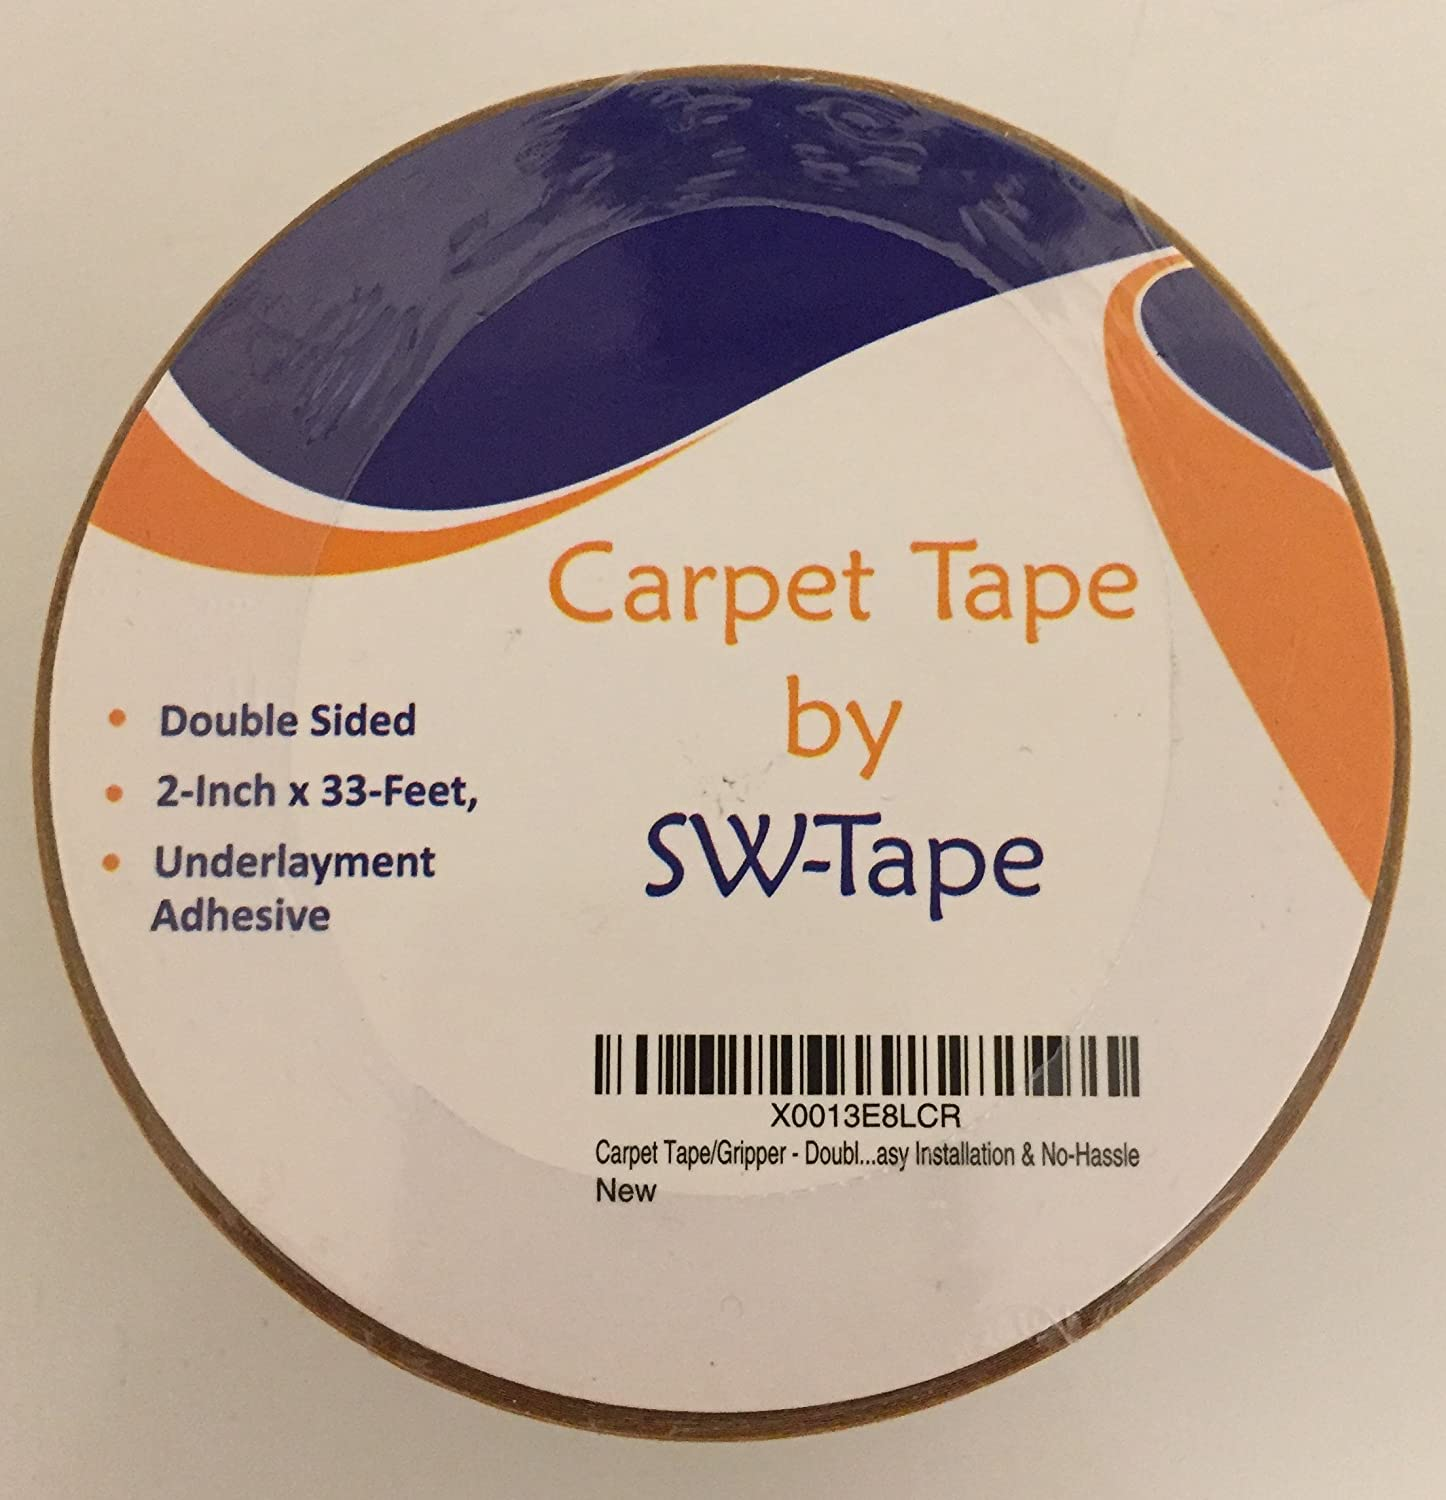 Terrific Carpet Tape For Hardwood Floors Ideas - Carpet ...